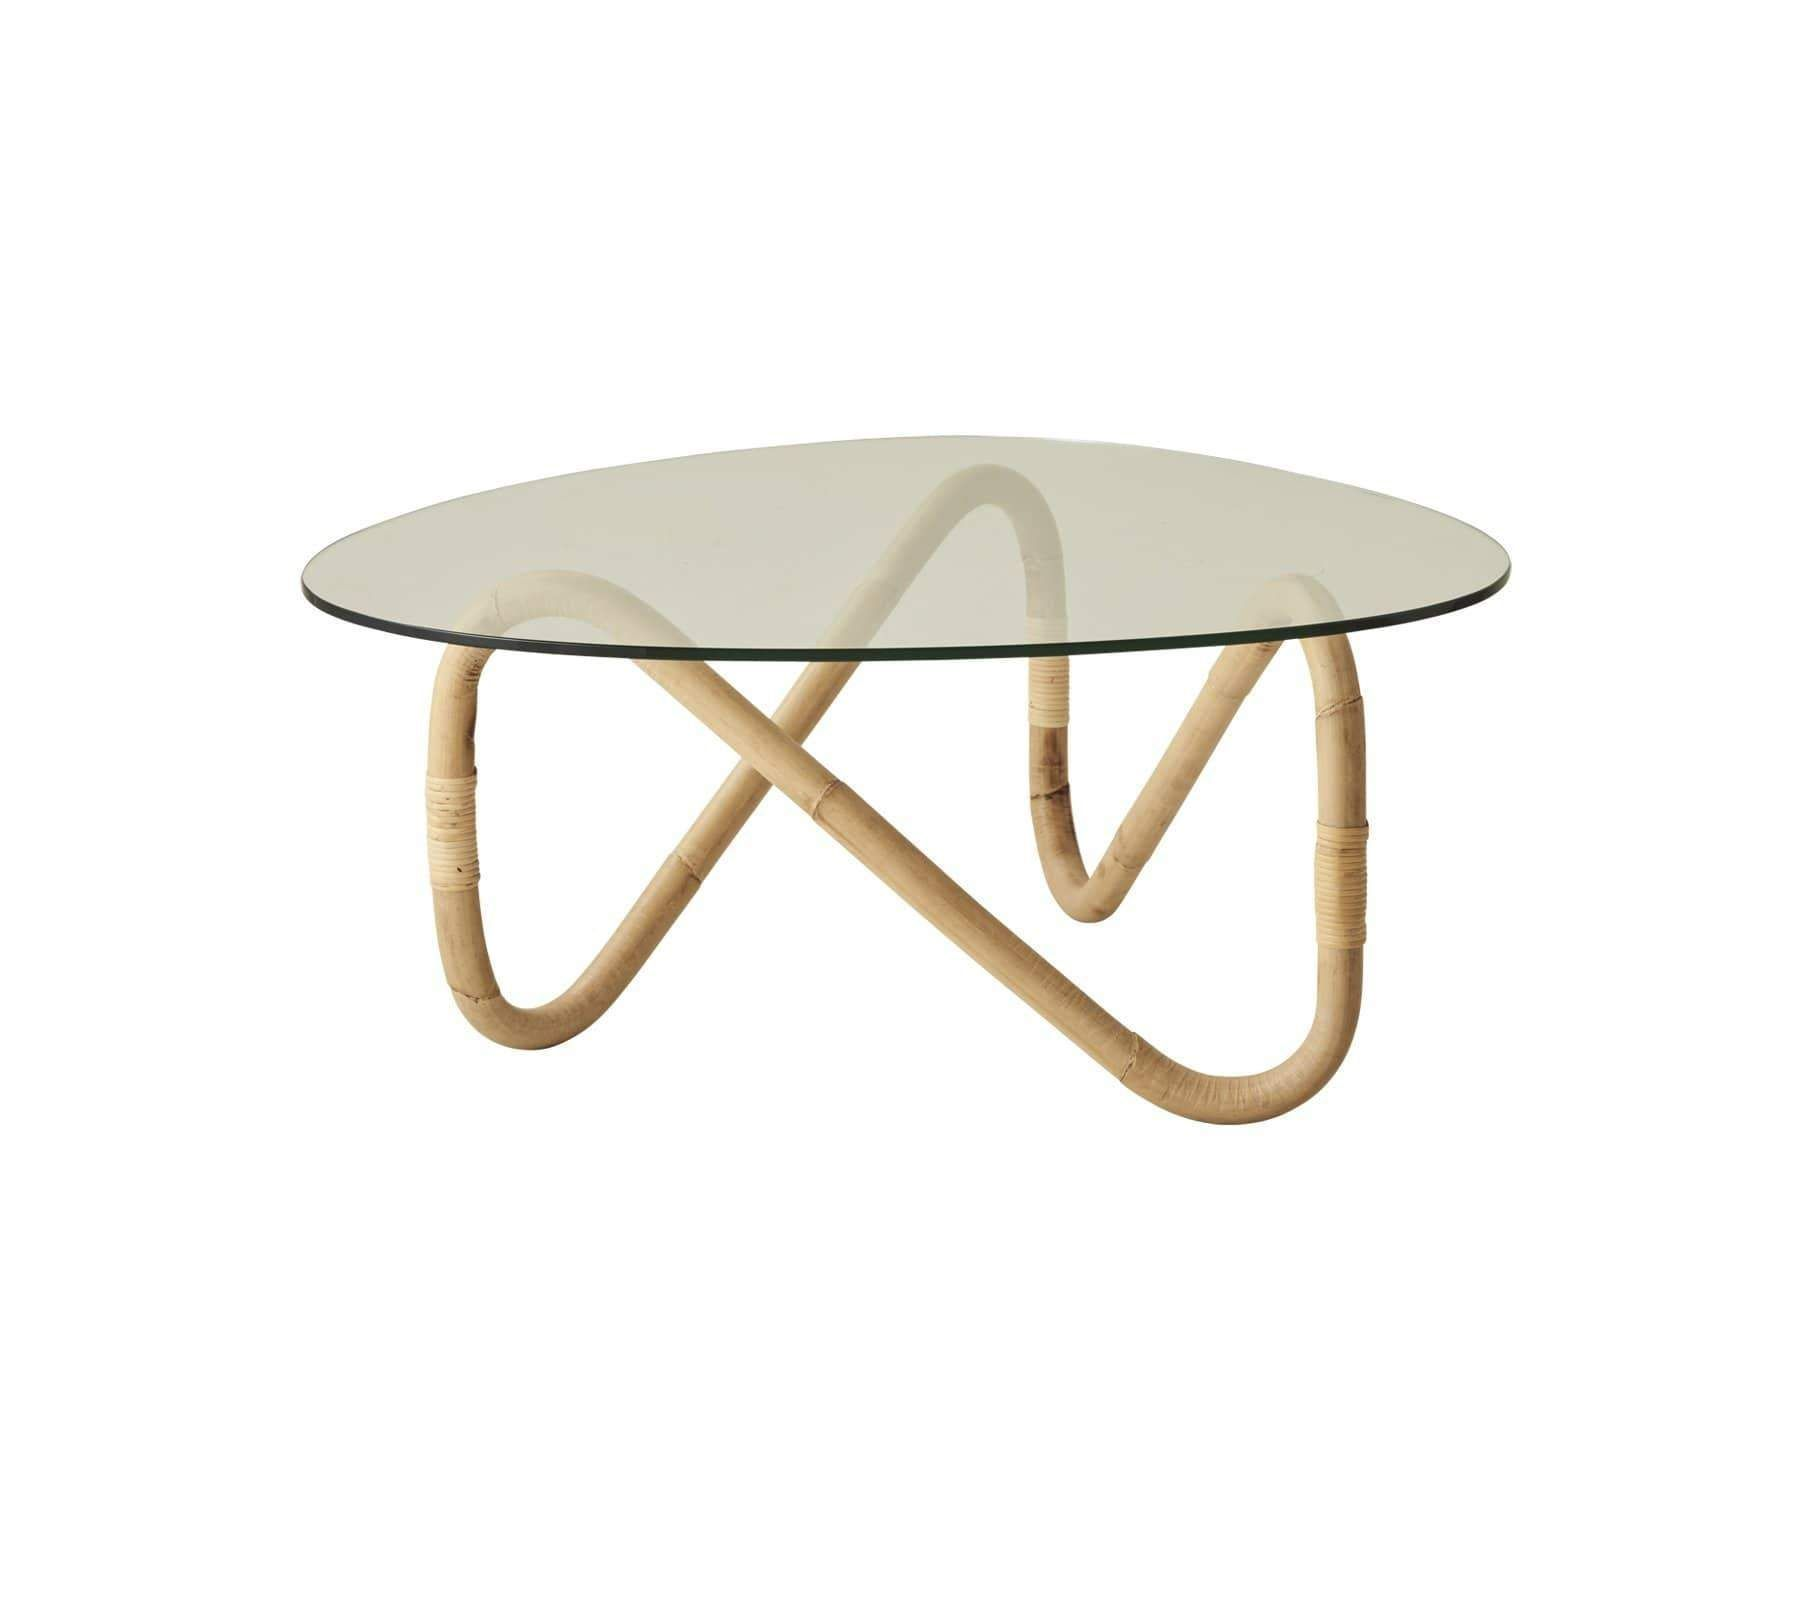 Wave Coffee Table In 2021 Coffee Table Glass Table Glass Top Table [ 1600 x 1800 Pixel ]